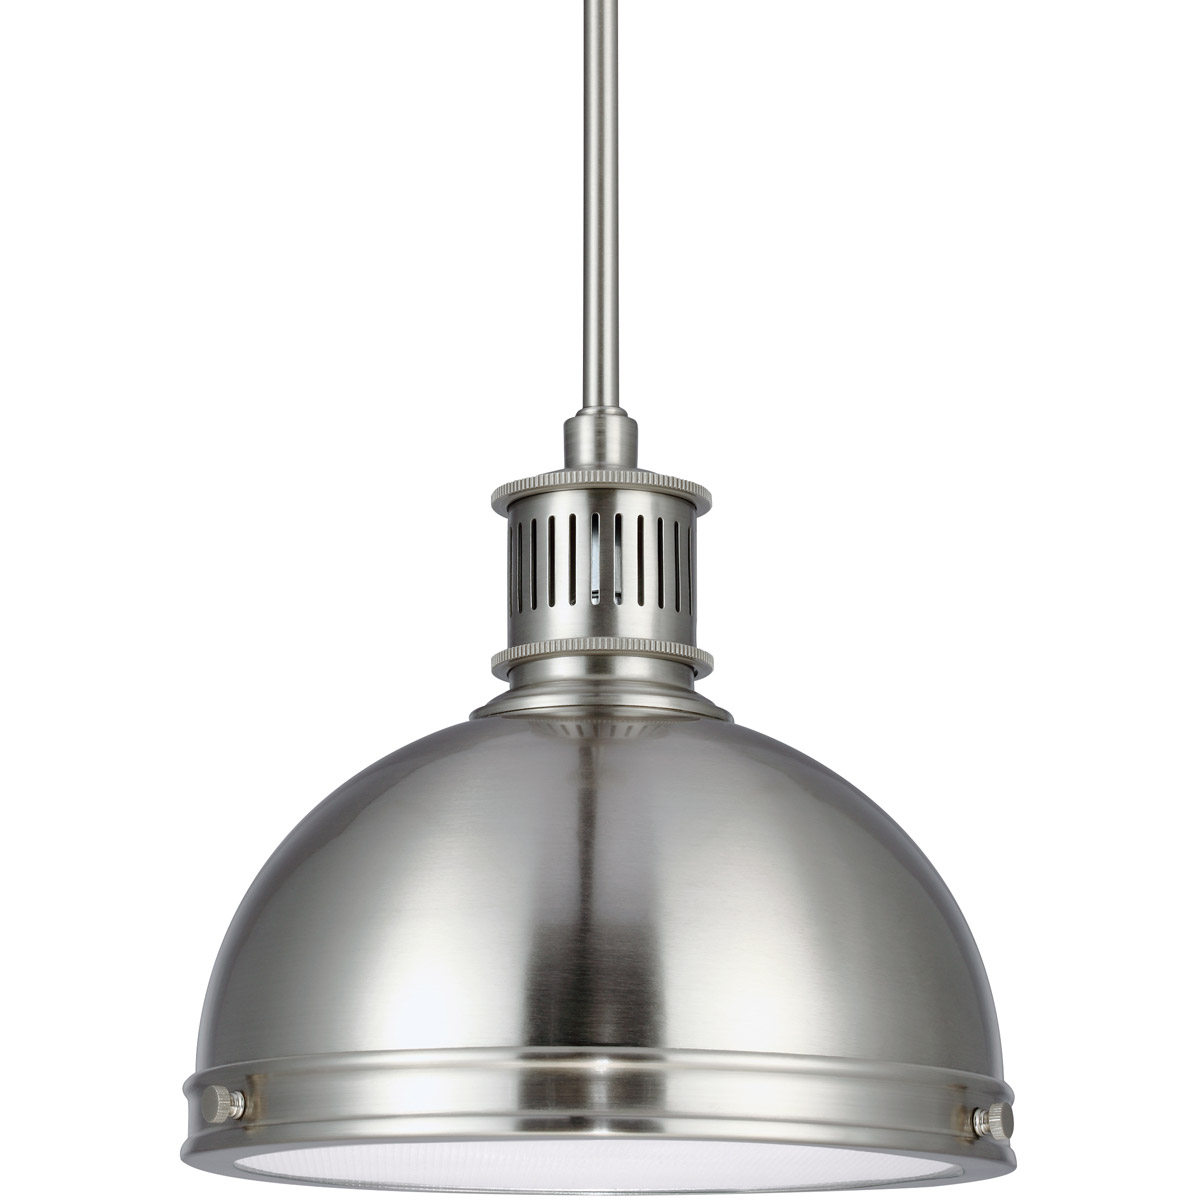 Sea Gull 65085-962 Pratt Street Metal 1 Light 10 inch Brushed Nickel Pendant Ceiling Light in Standard photo